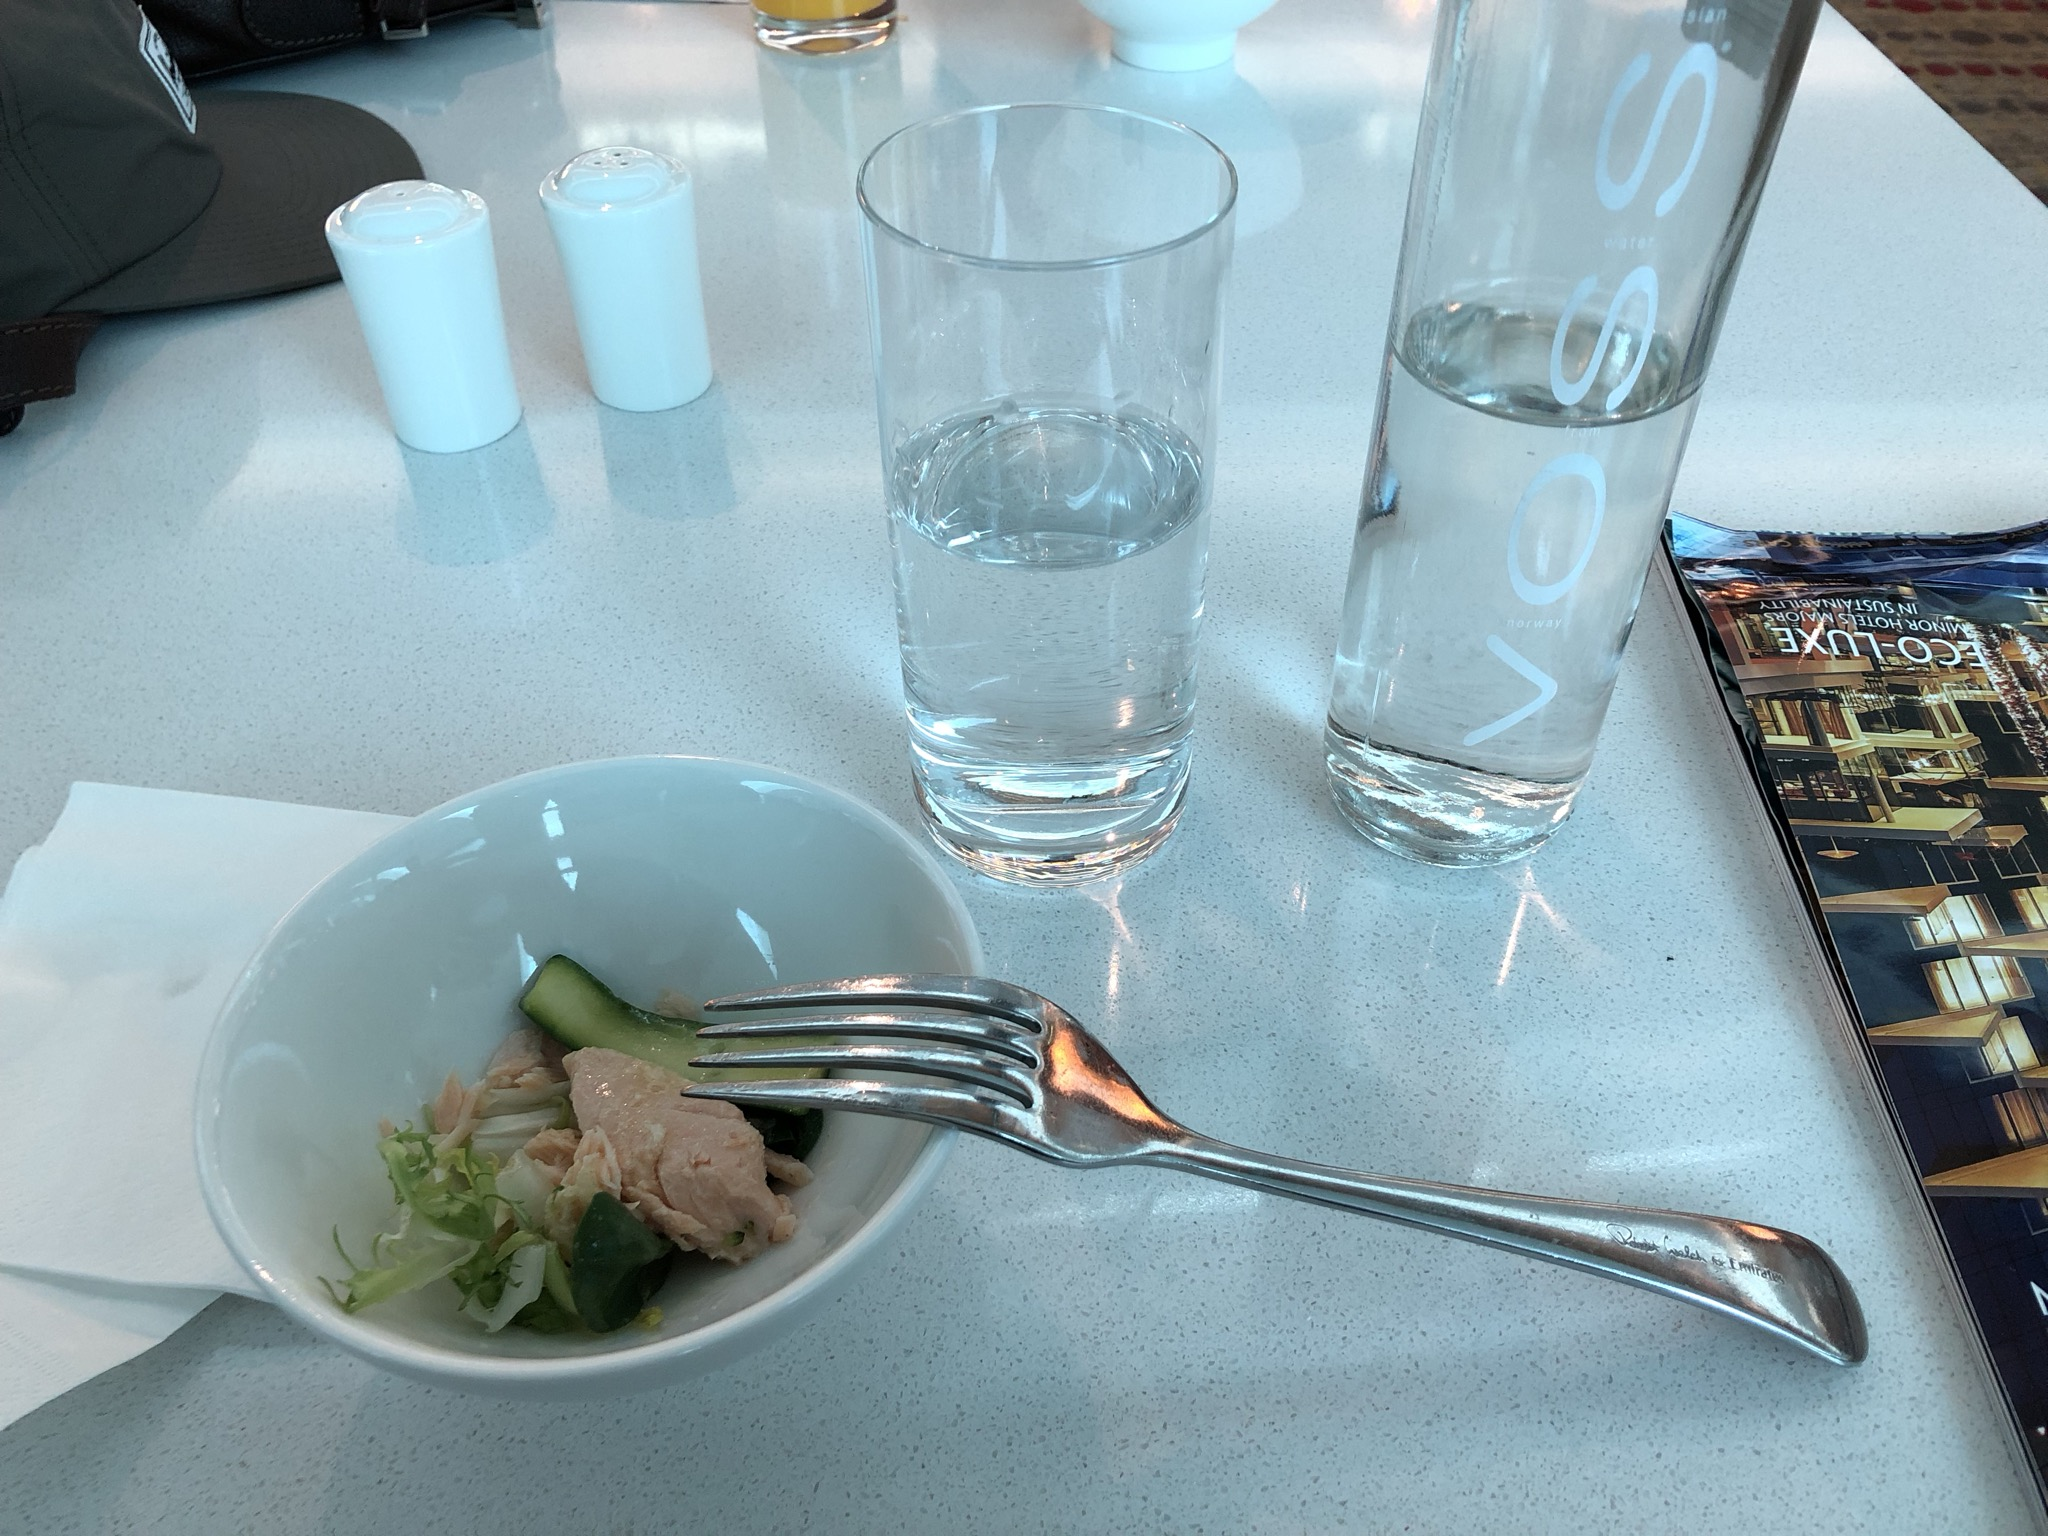 Norwegian designer water? check (unusual in an airport lounge, actually)